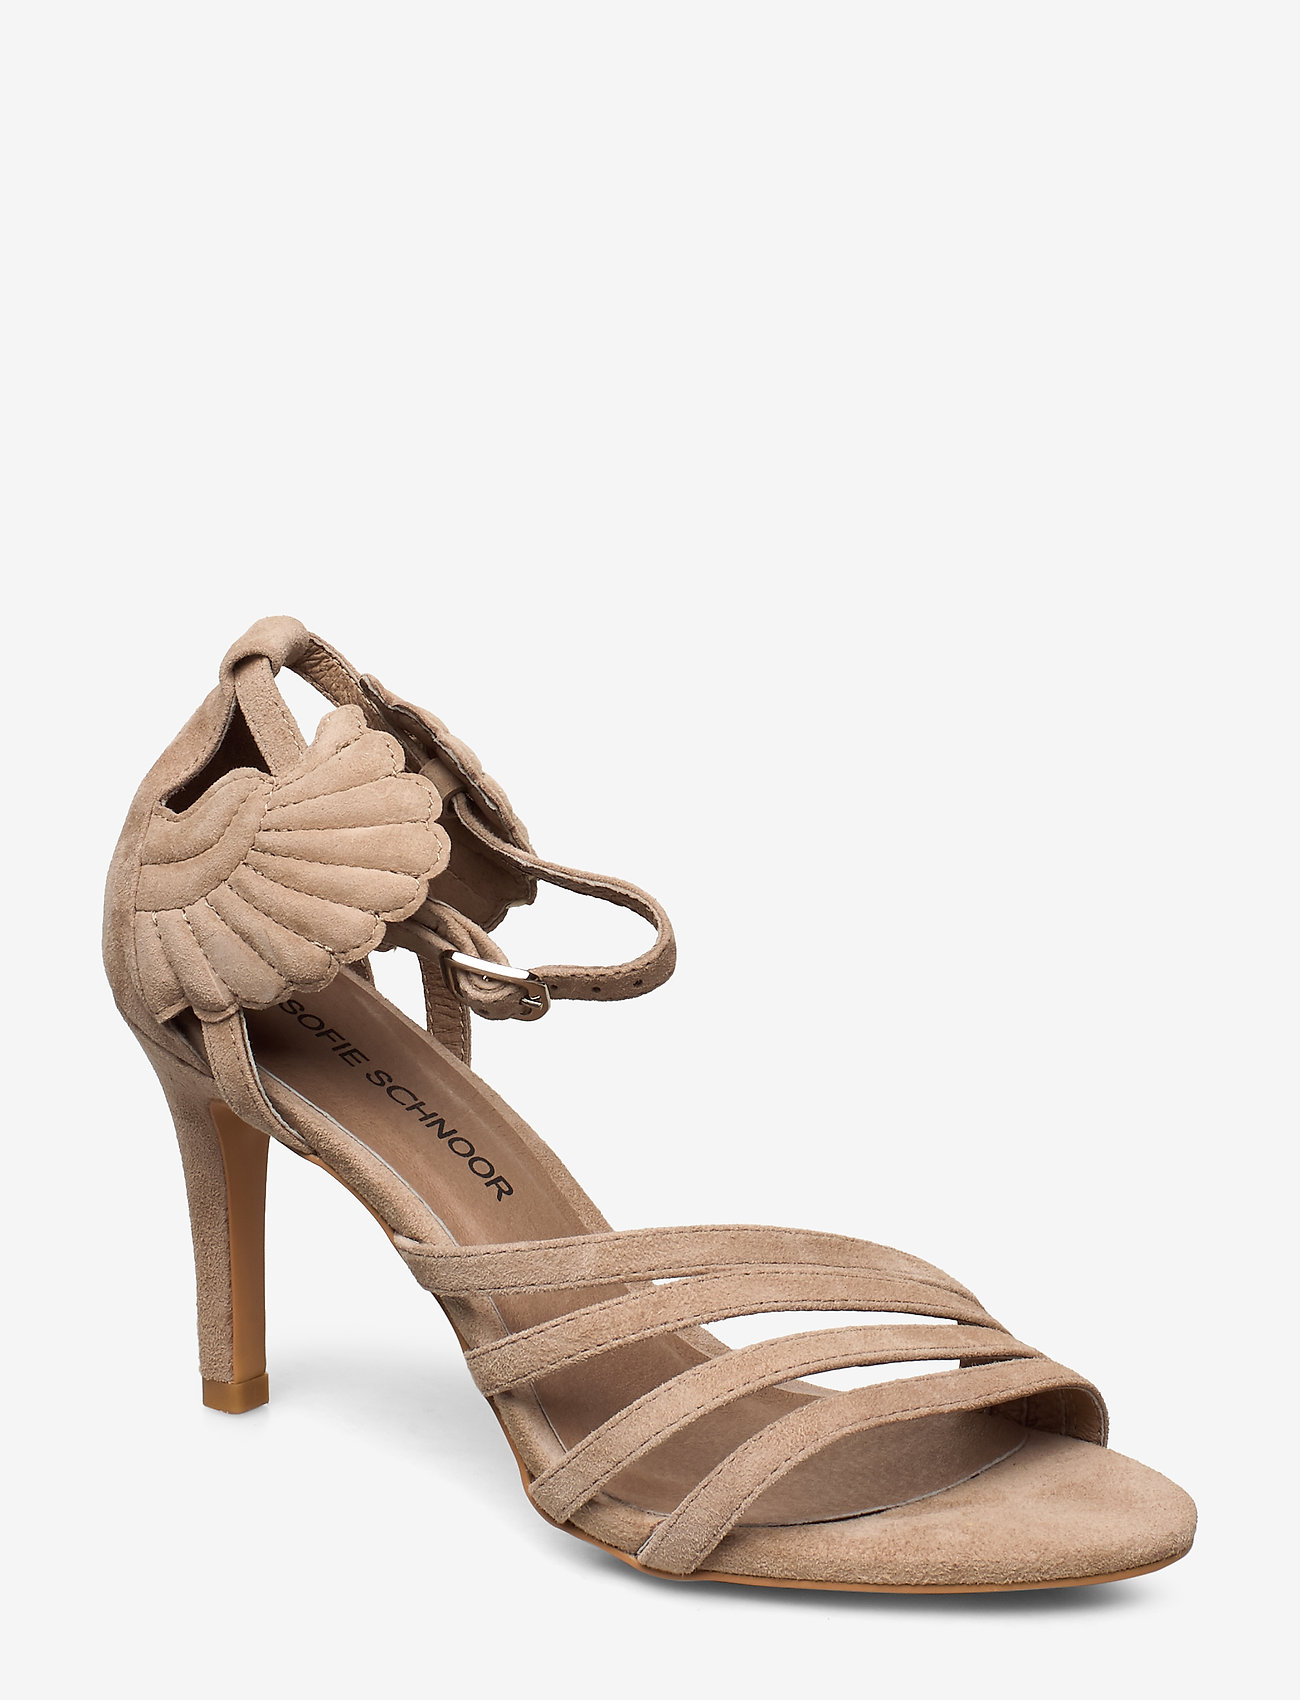 Sofie Schnoor - Shoe - sandales à talons - taupe - 0